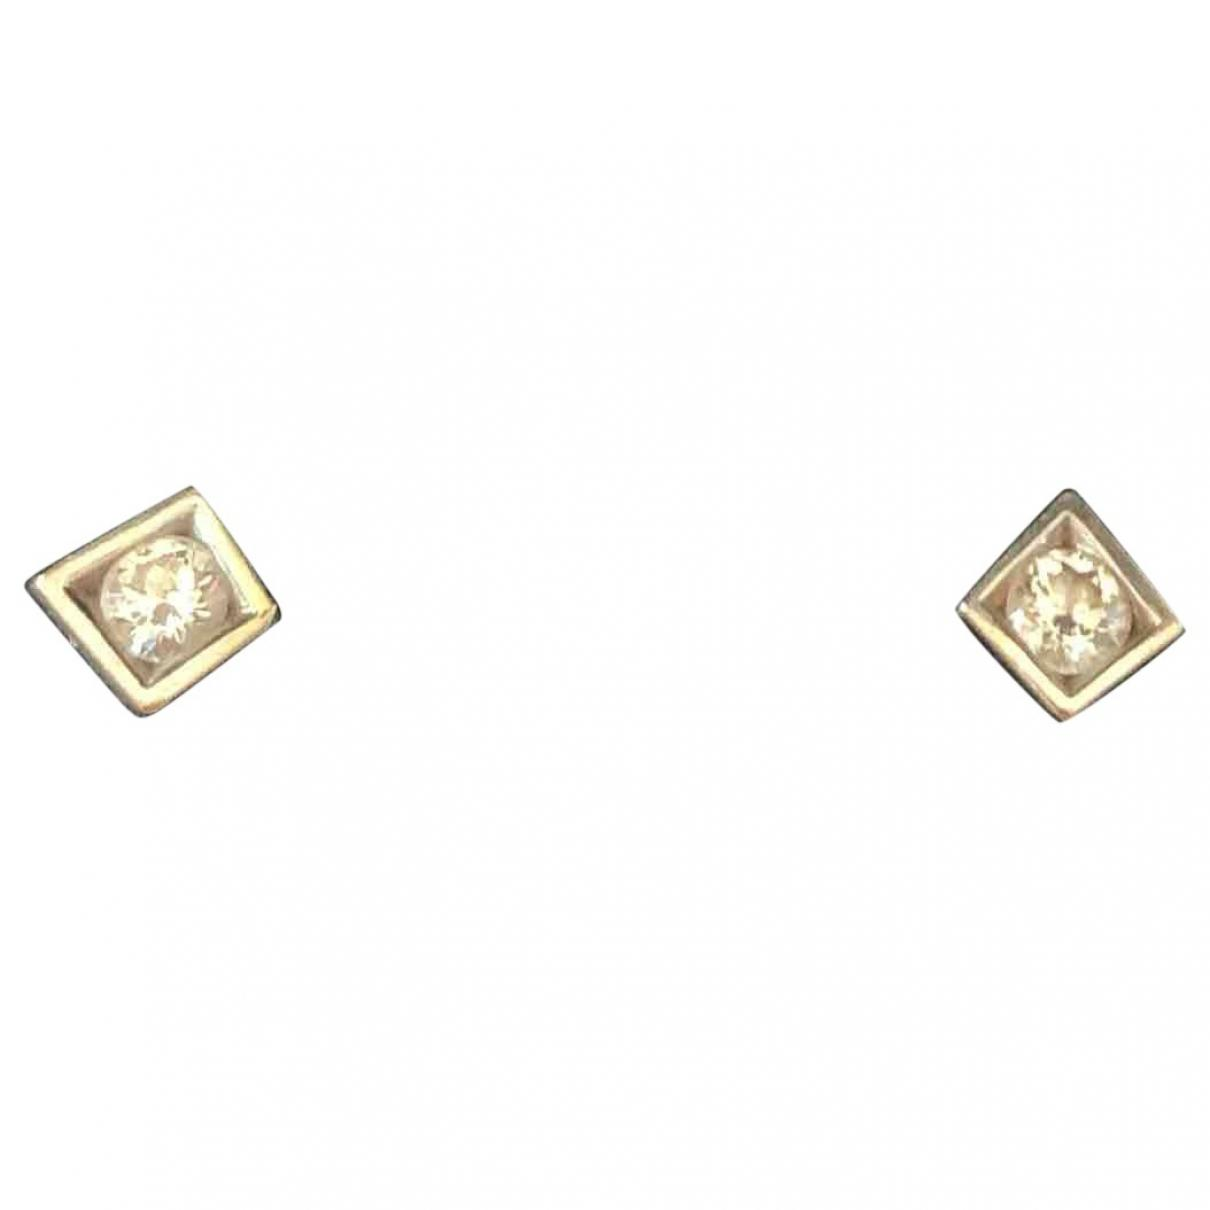 White co. Tiffany gold earrings for women forecast to wear in spring in 2019